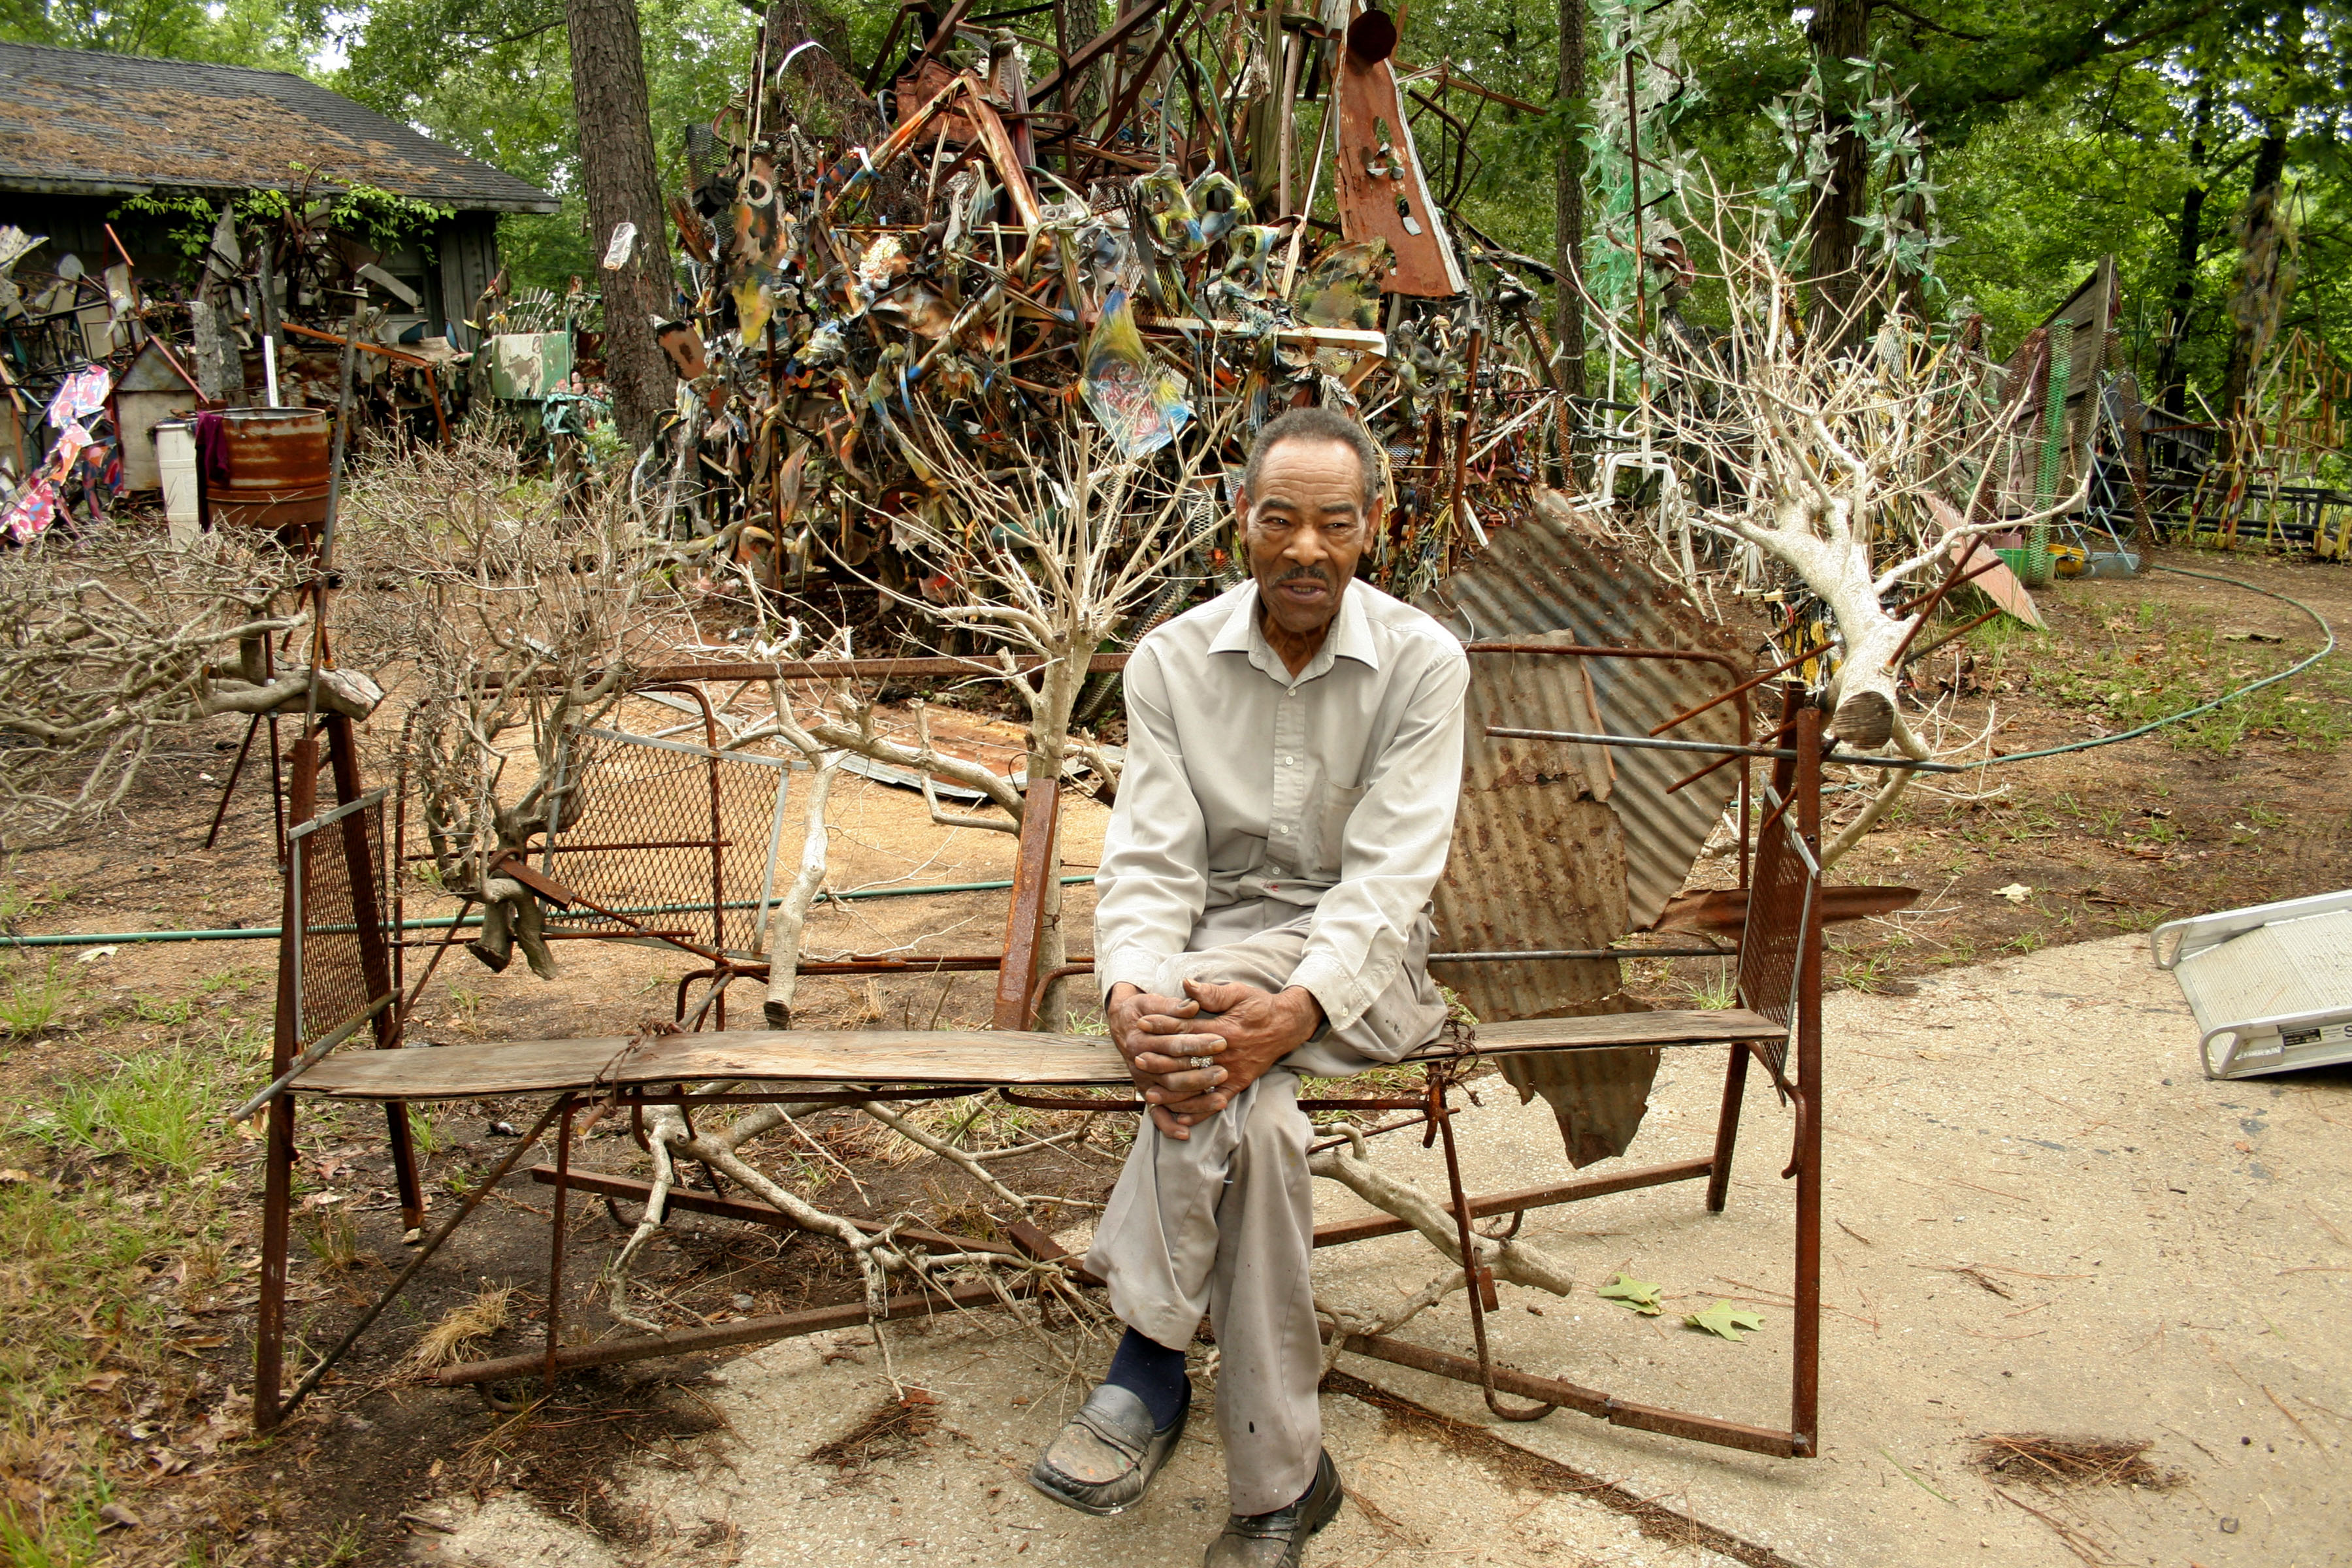 Thornton Dial, Pioneering Artist Who Channeled Everyday Materials Into Intricate Constructions, Dies at 87